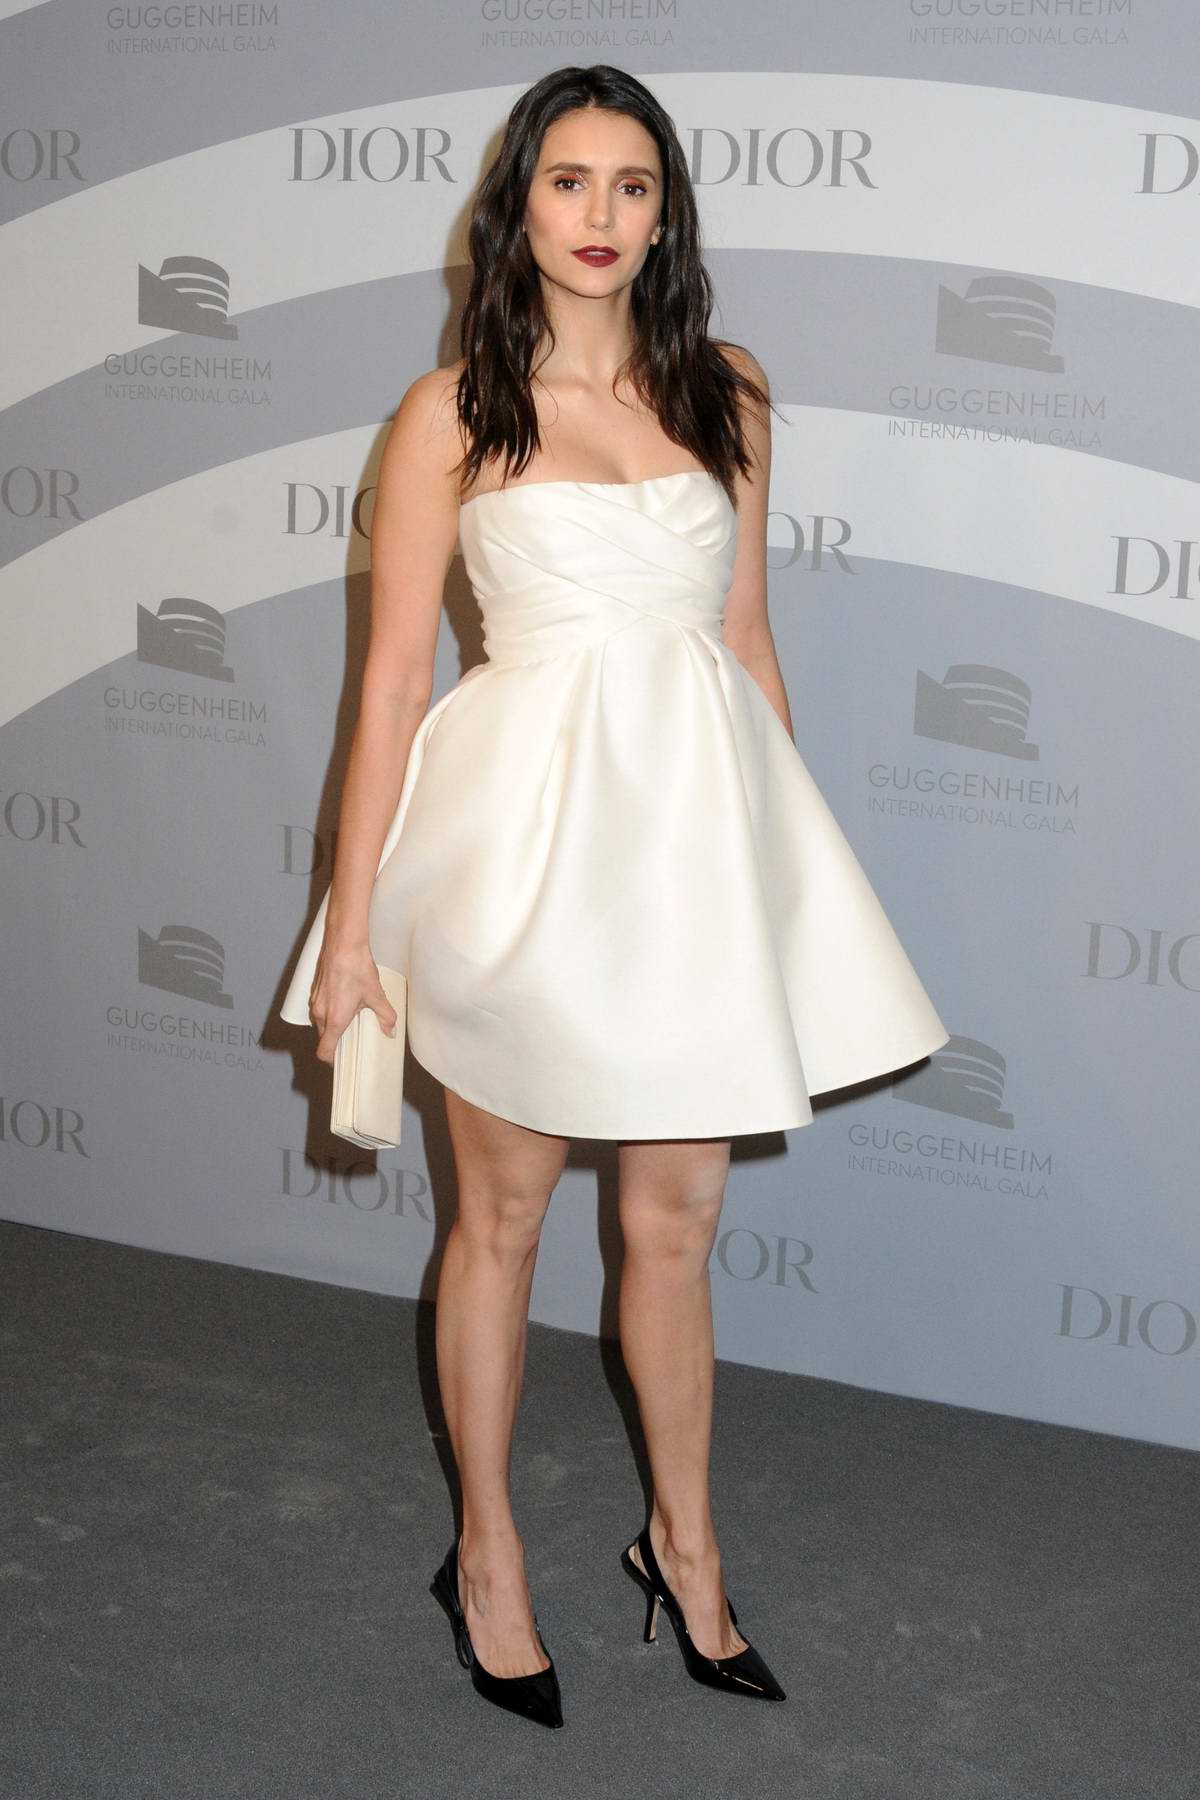 Nina Dobrev attends the Guggenheim International Gala at The Guggenheim in New York City